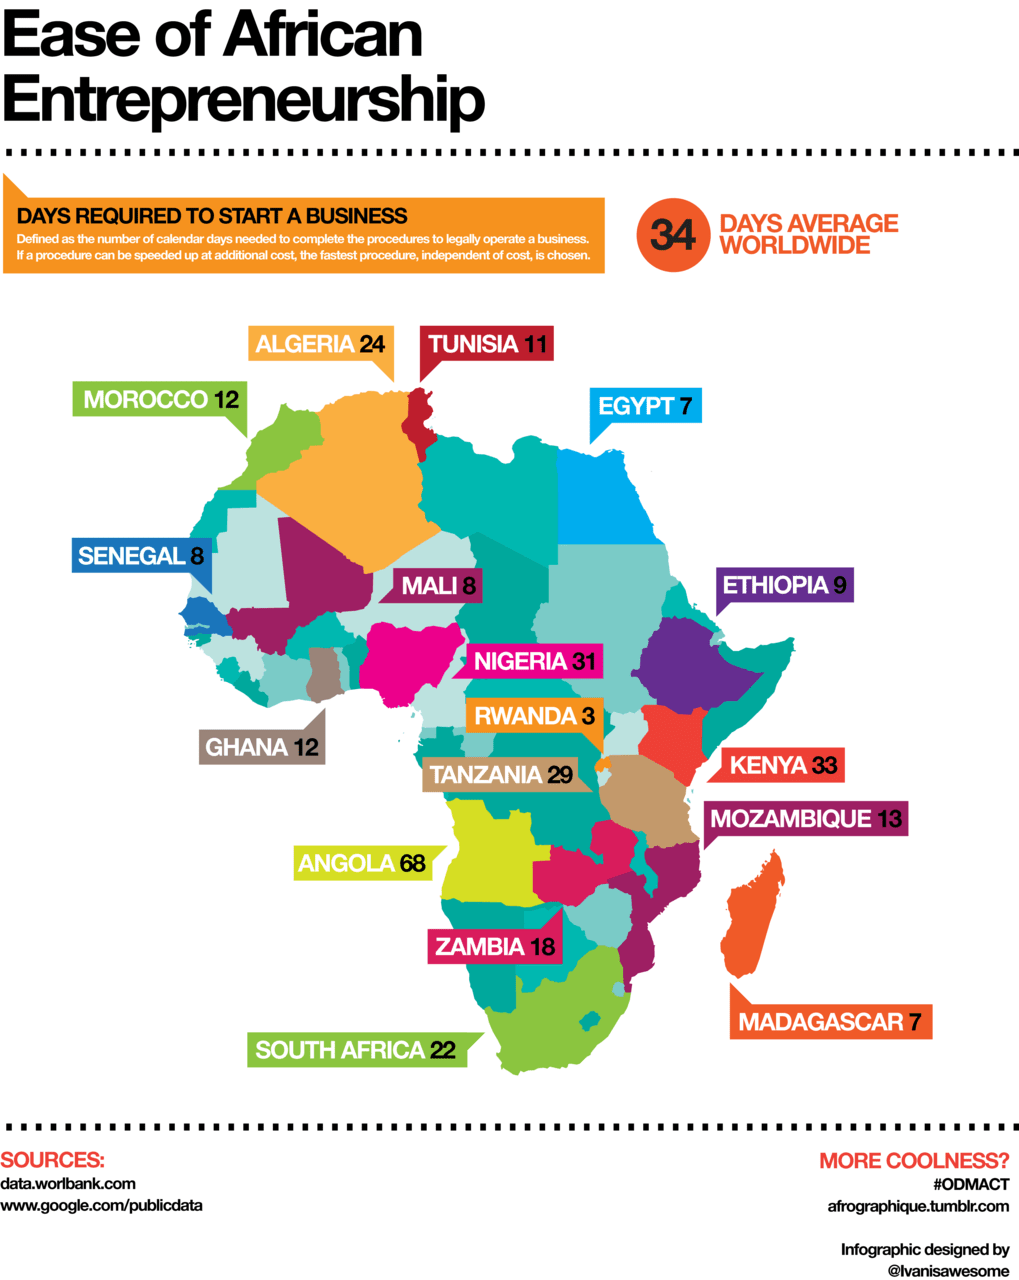 An infographic depicting the number of days it takes to start a legal business across the African continent. Data from the World Bank, 2010.